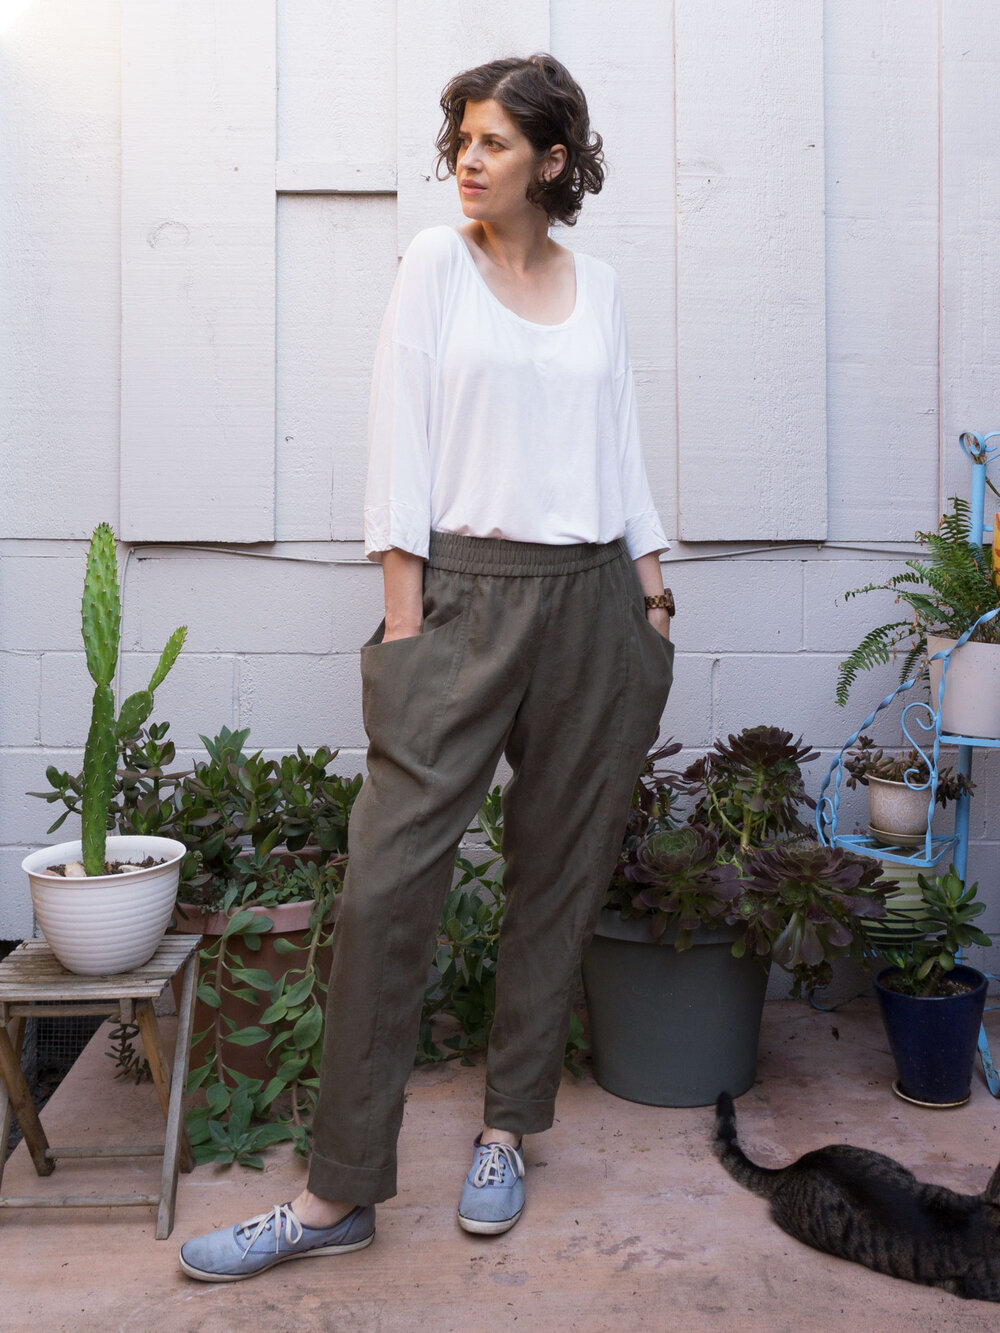 Arenite Pants in olive green tencel by Sew DIY